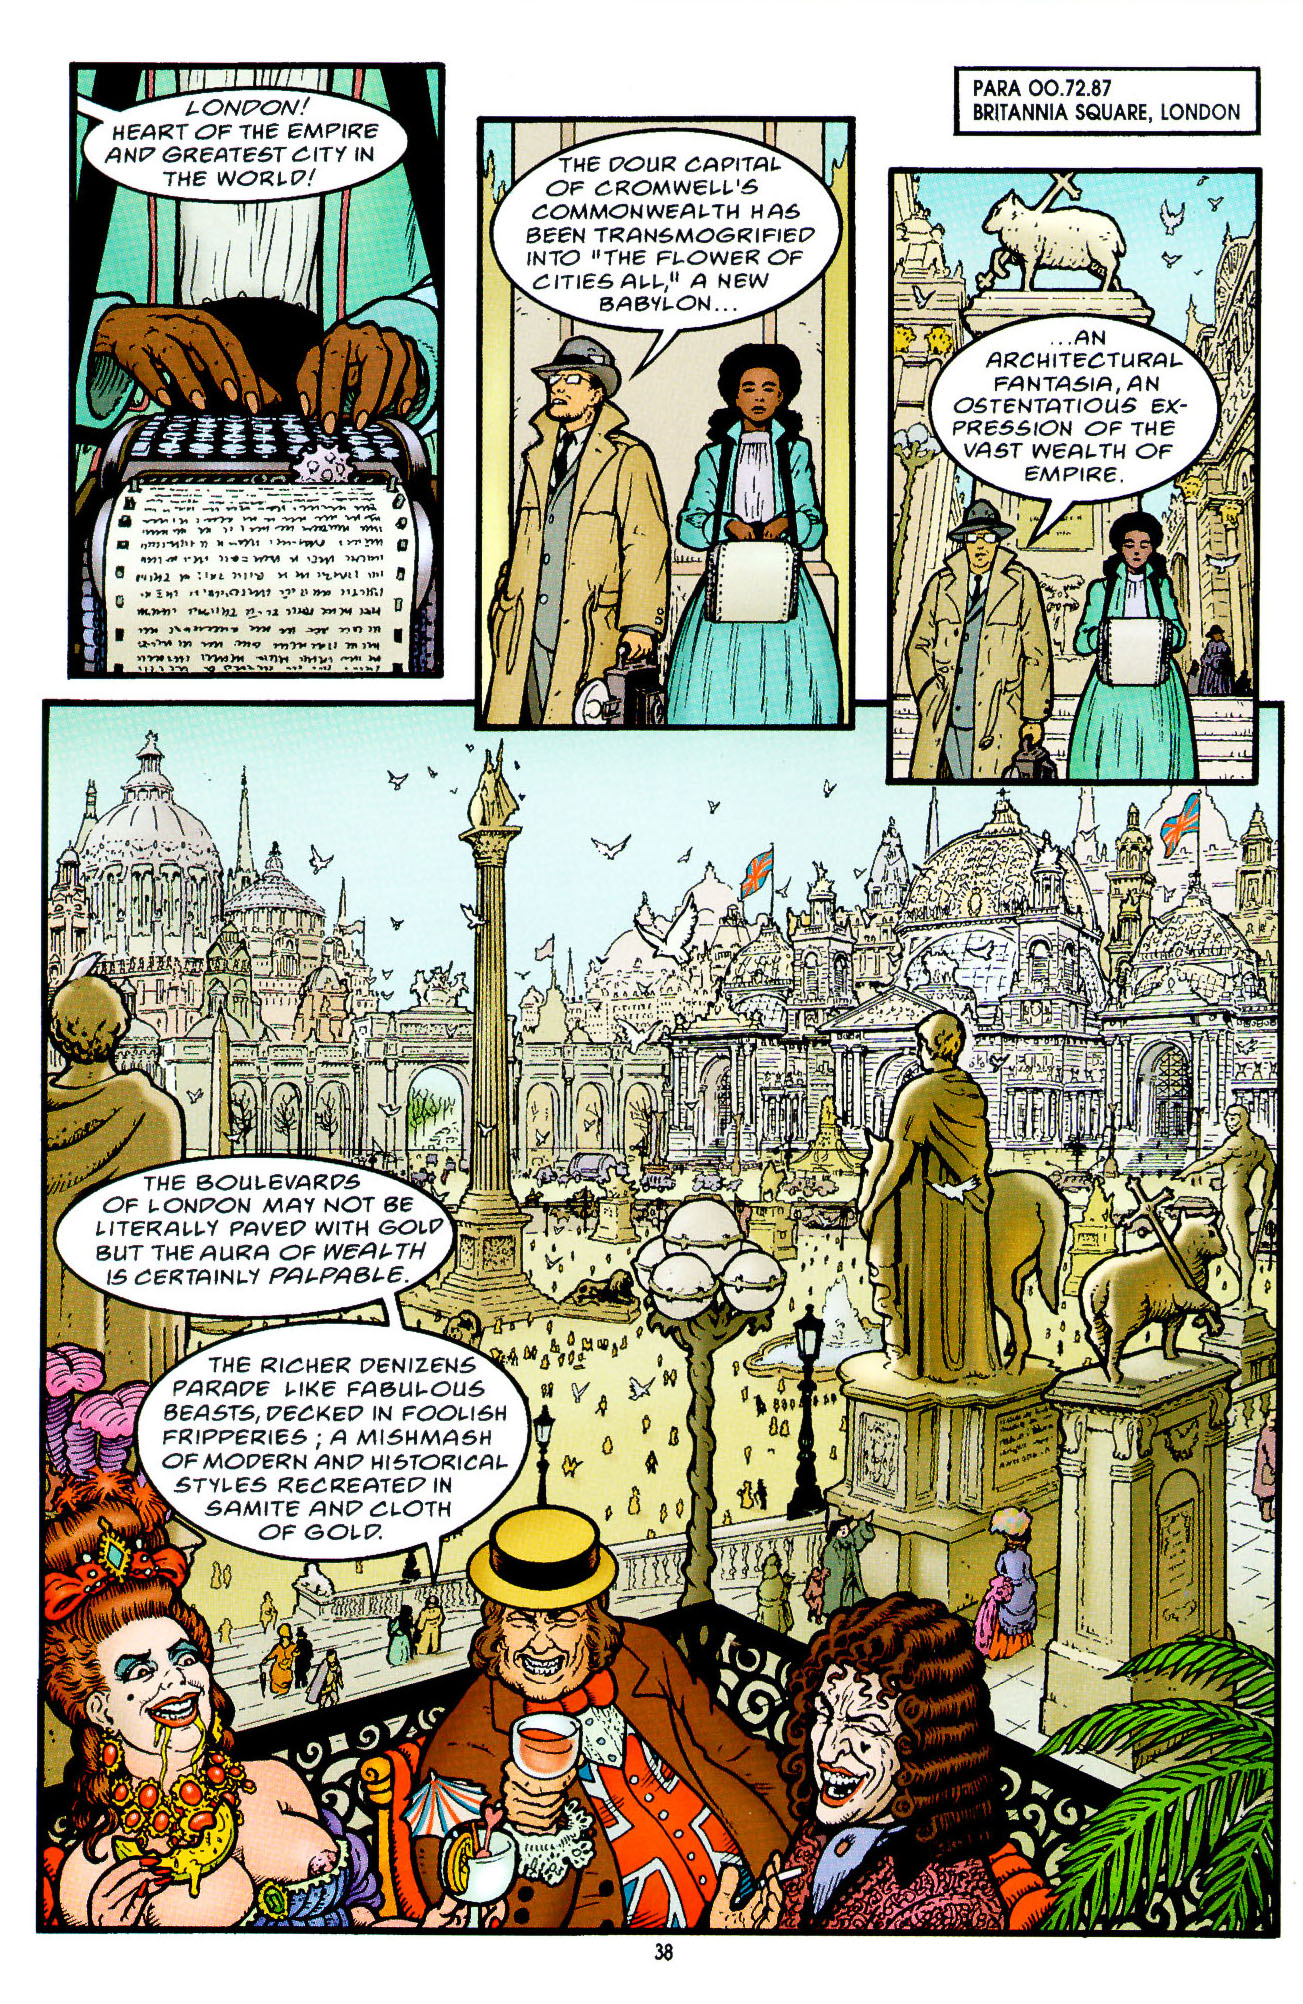 Read online Heart of Empire comic -  Issue #2 - 6